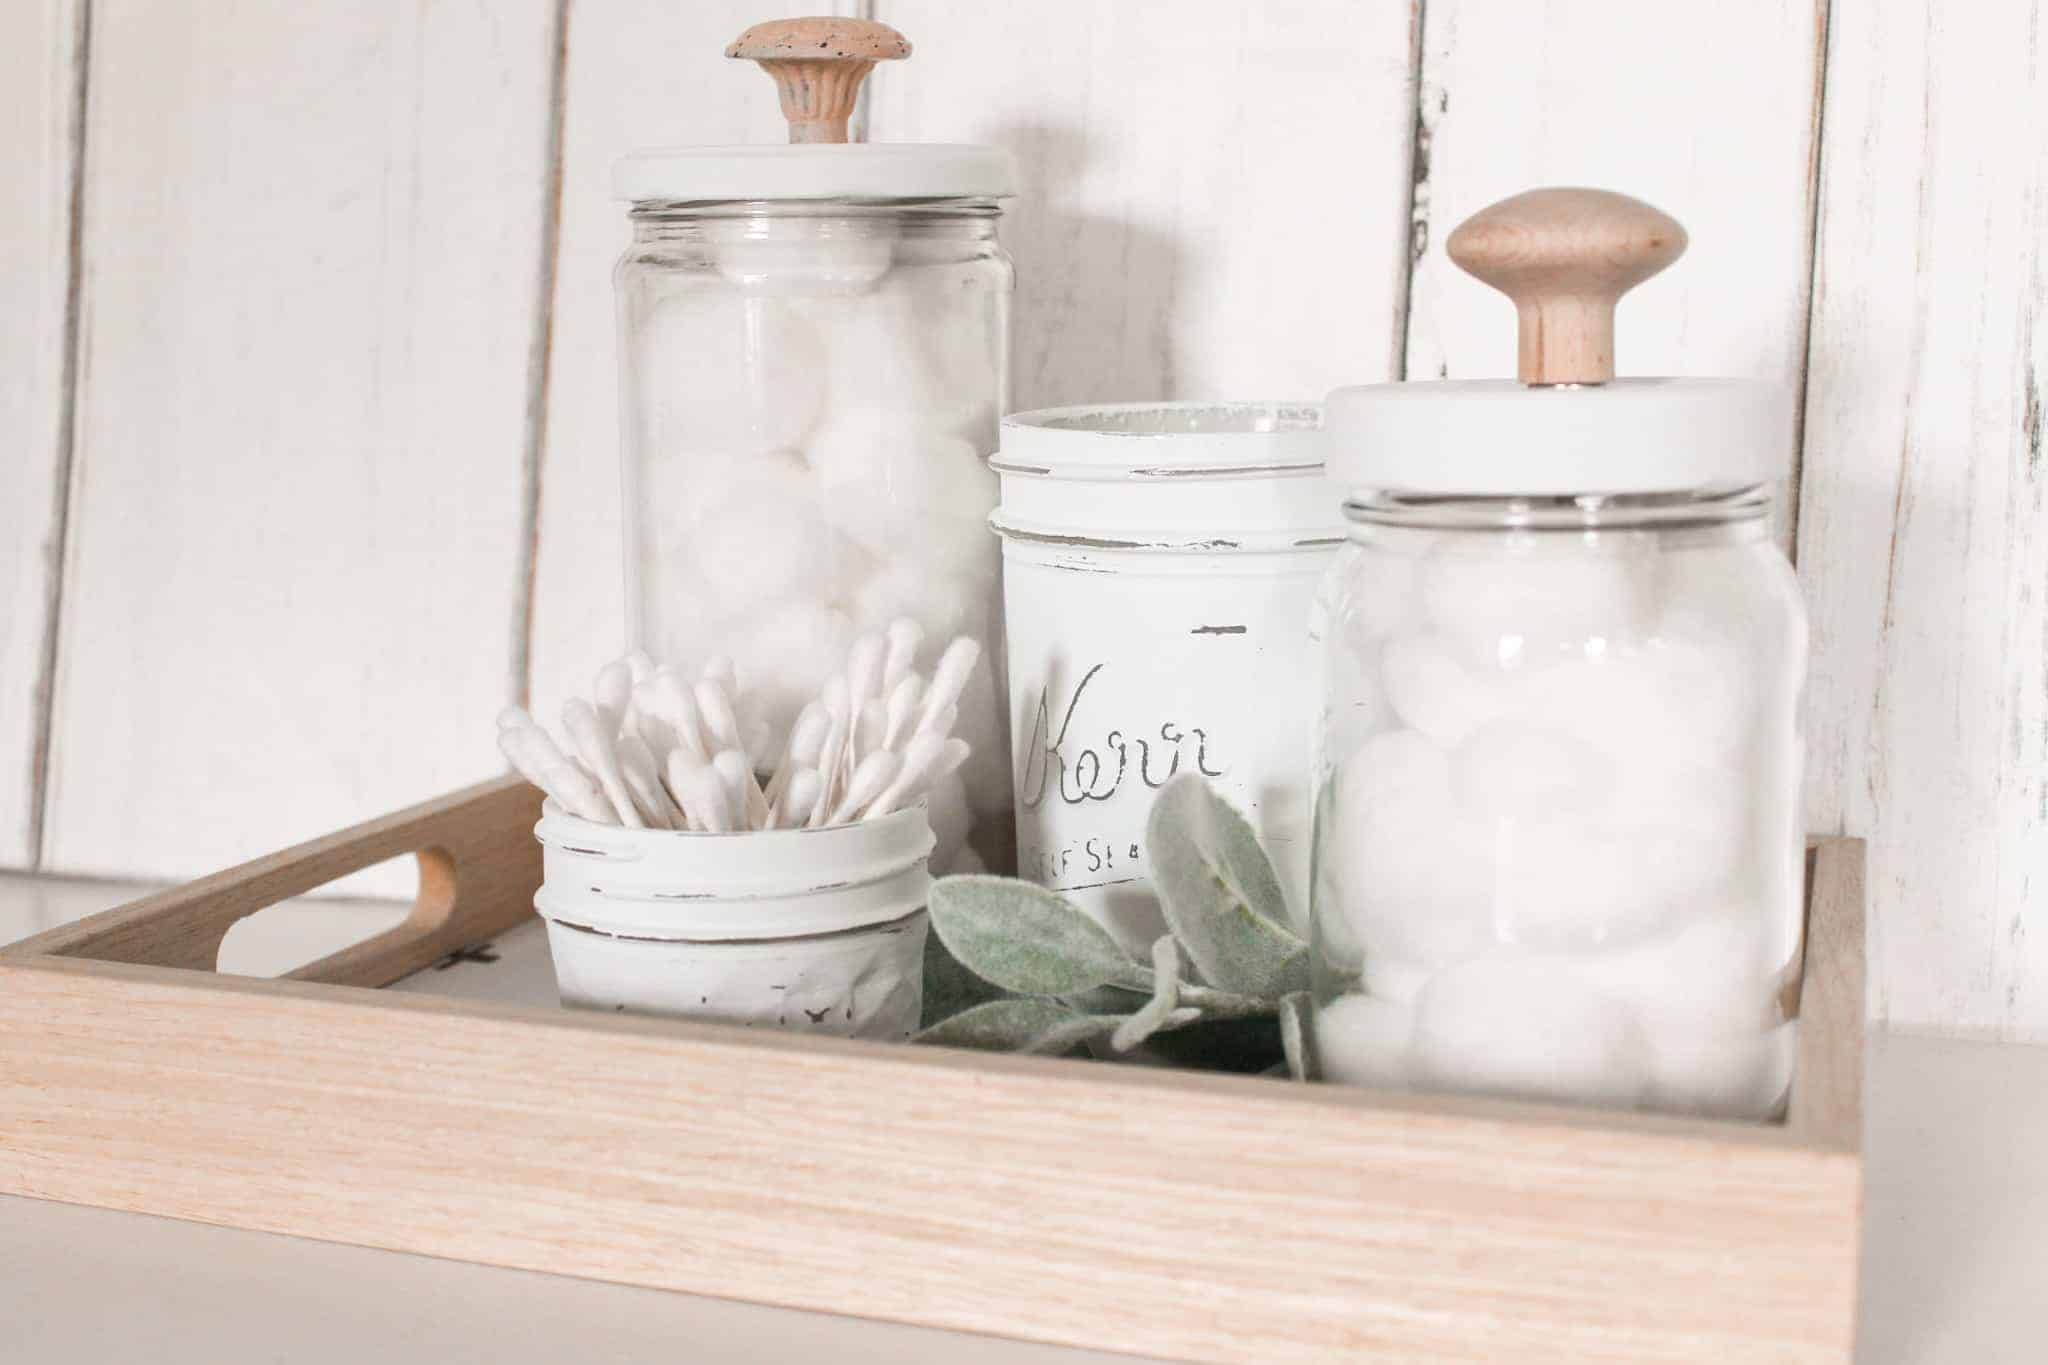 Redecorate with items you own - photo of upcycled glass jars